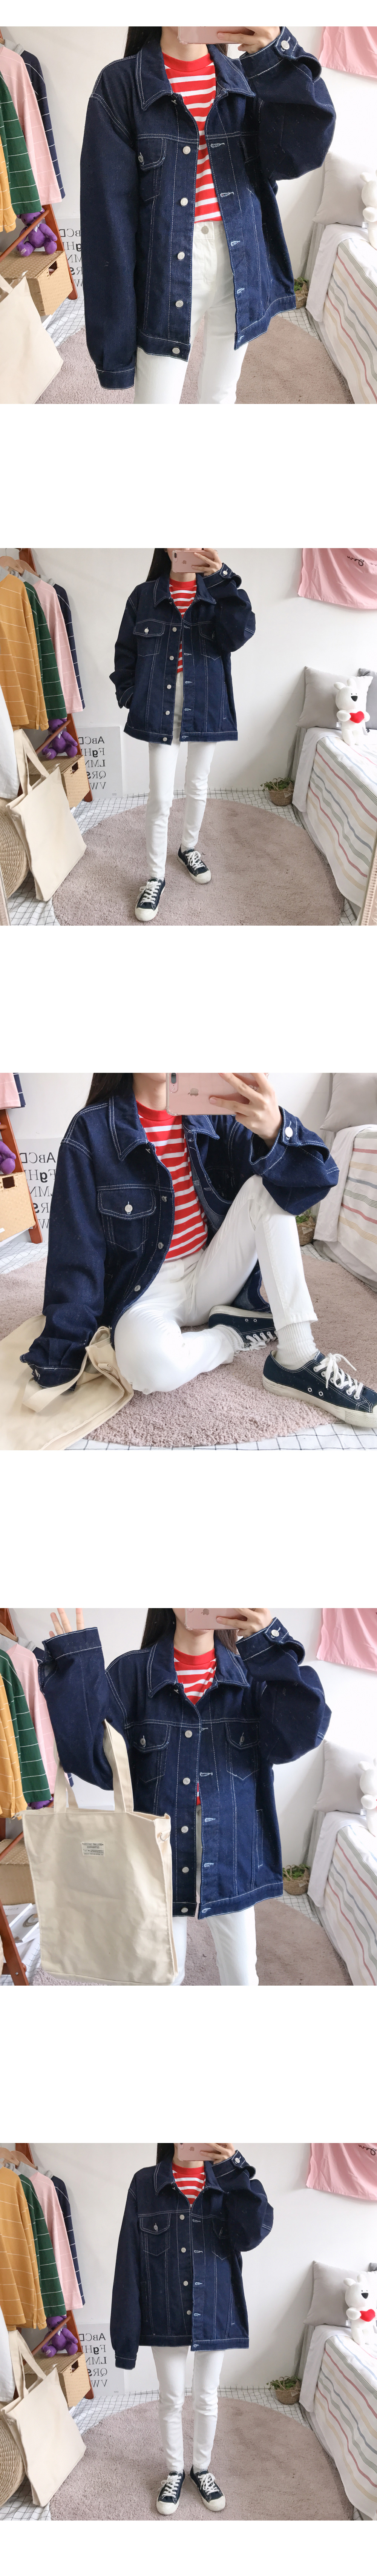 Stitch denim jacket